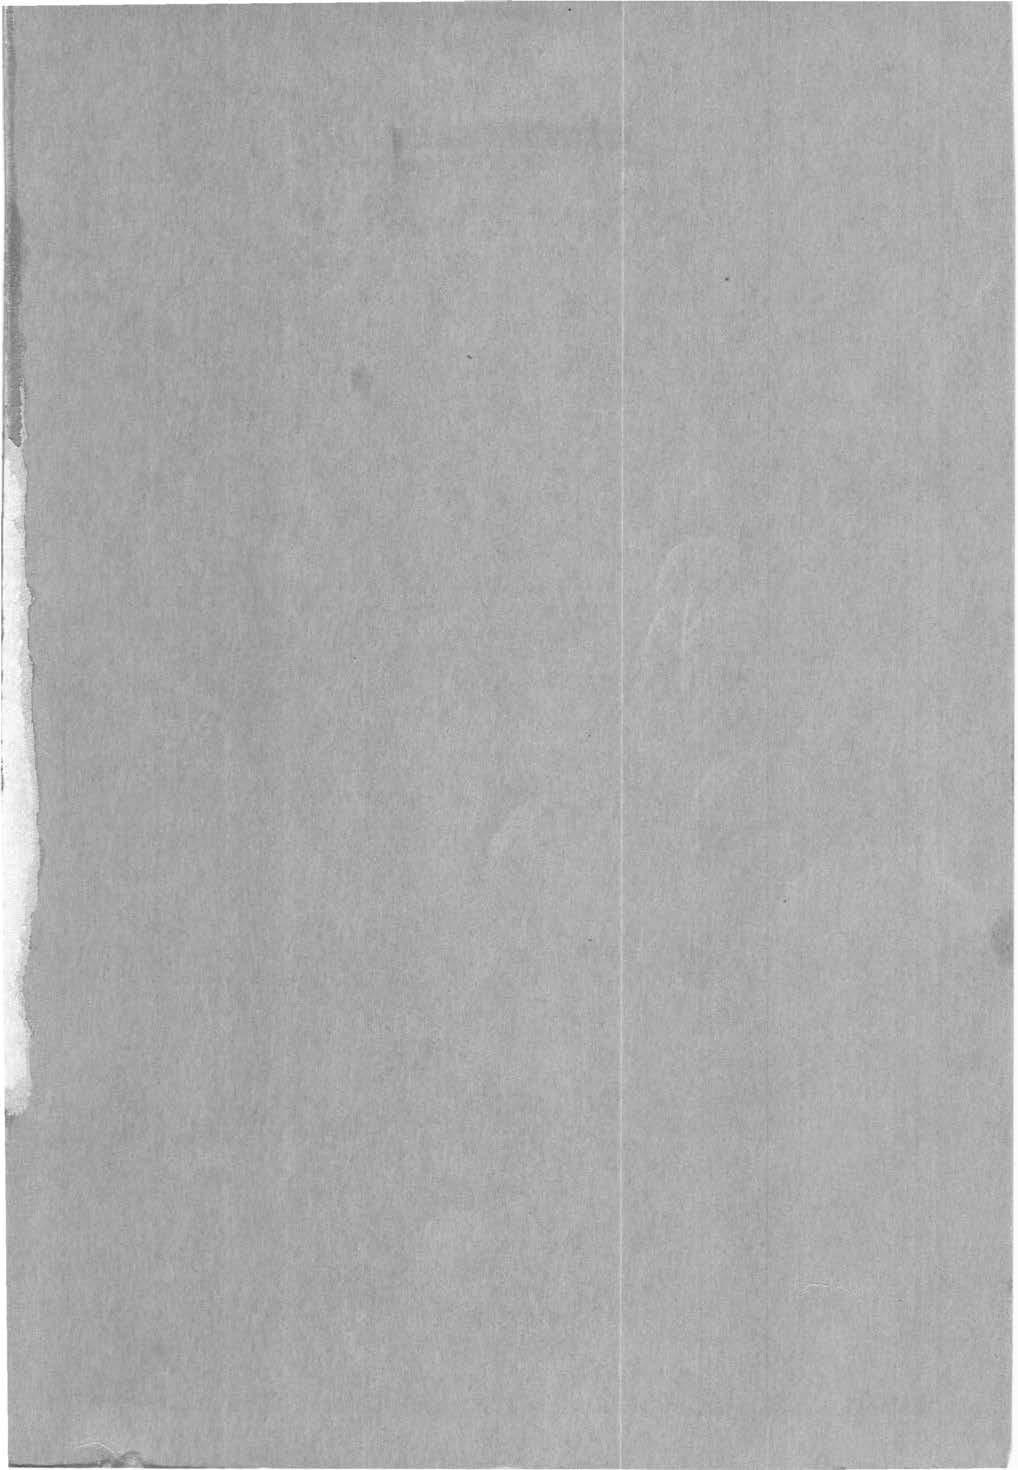 The Mountaineer Volume 48 December 28 1955 Number 13 Organized Moen 7790 Parts List And Diagram Ereplacementpartscom 1906 Incorporated Editor Pdf